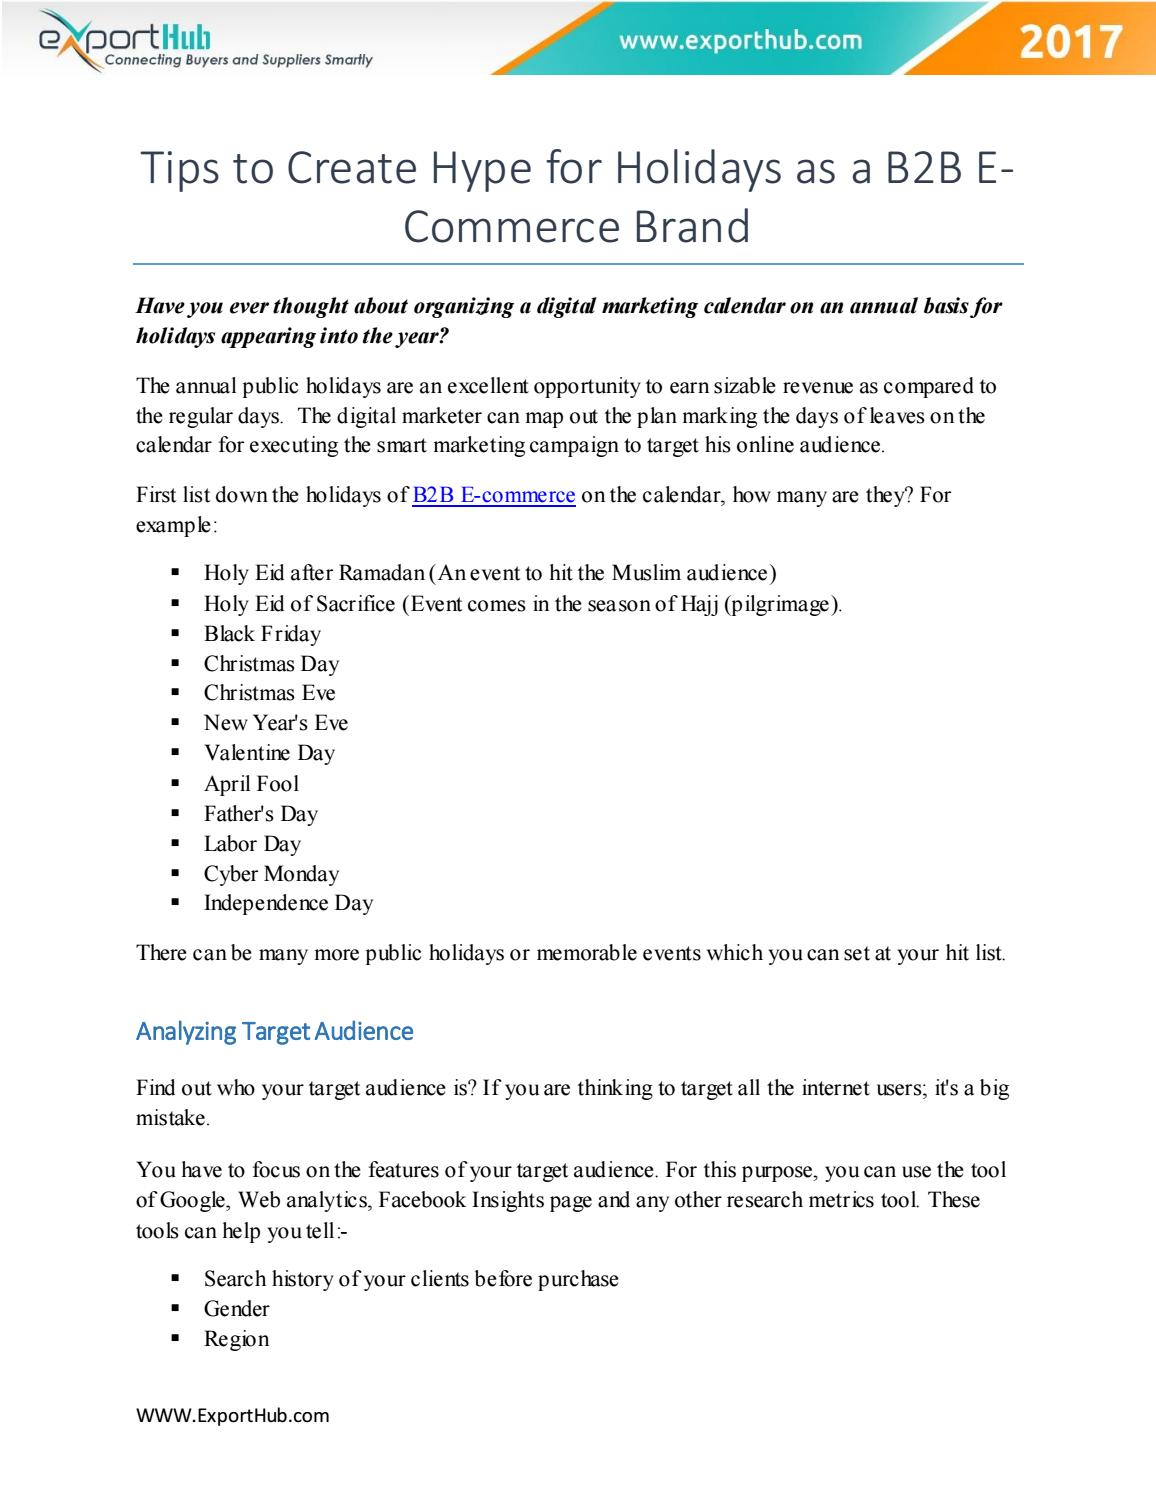 Tips to Create Hype for Holidays as a B2B E-Commerce Brand by ...